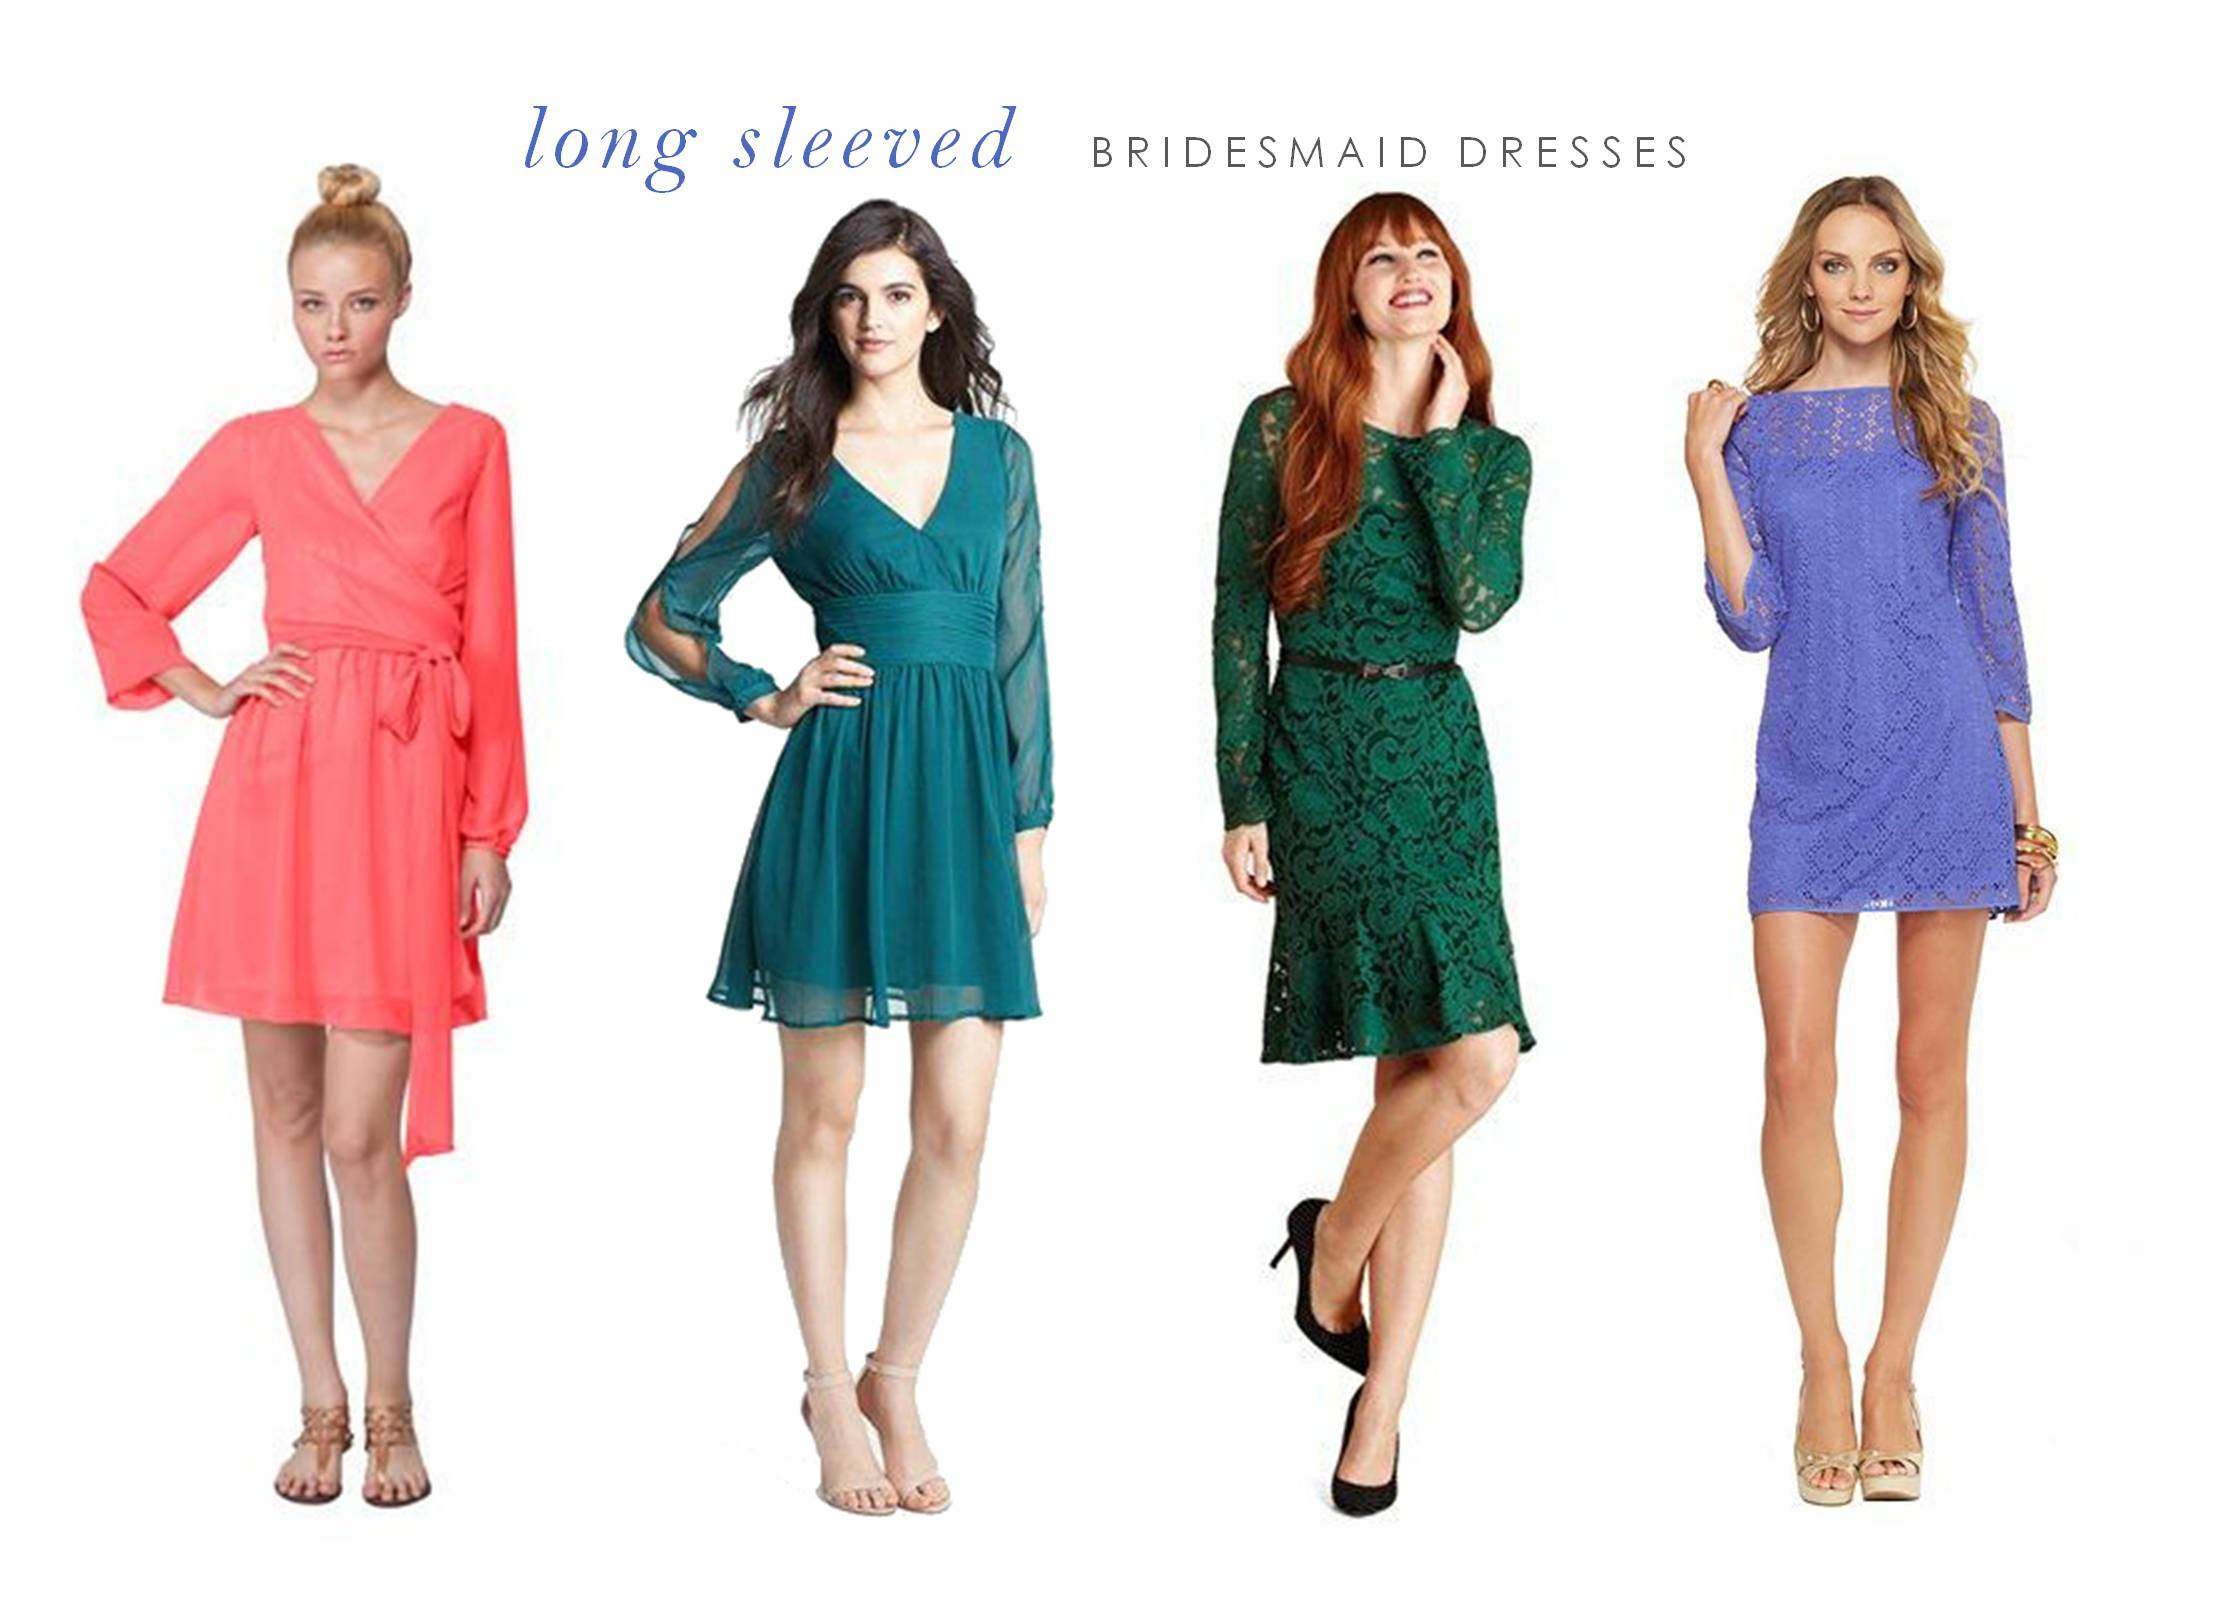 15 of the Best Long Sleeved Dresses for Bridesmaids